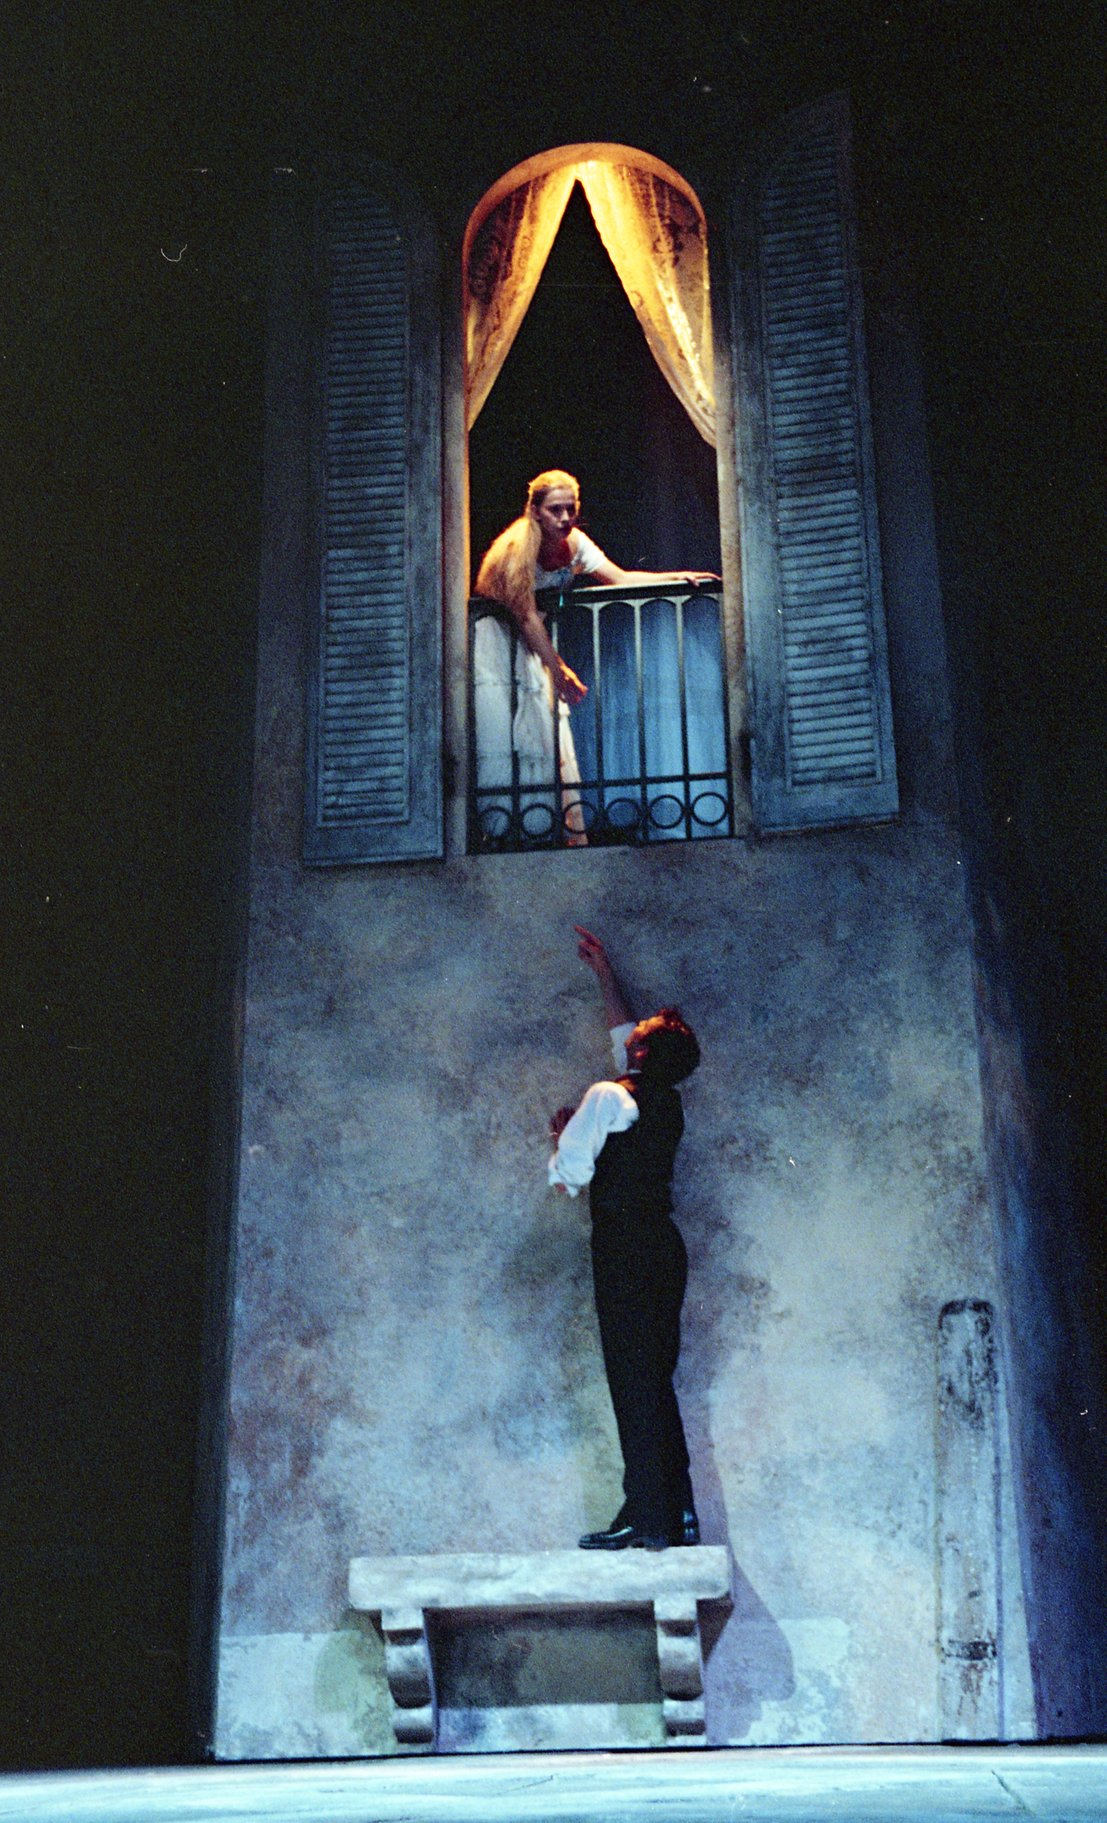 Romeo reaches up to Juliet.